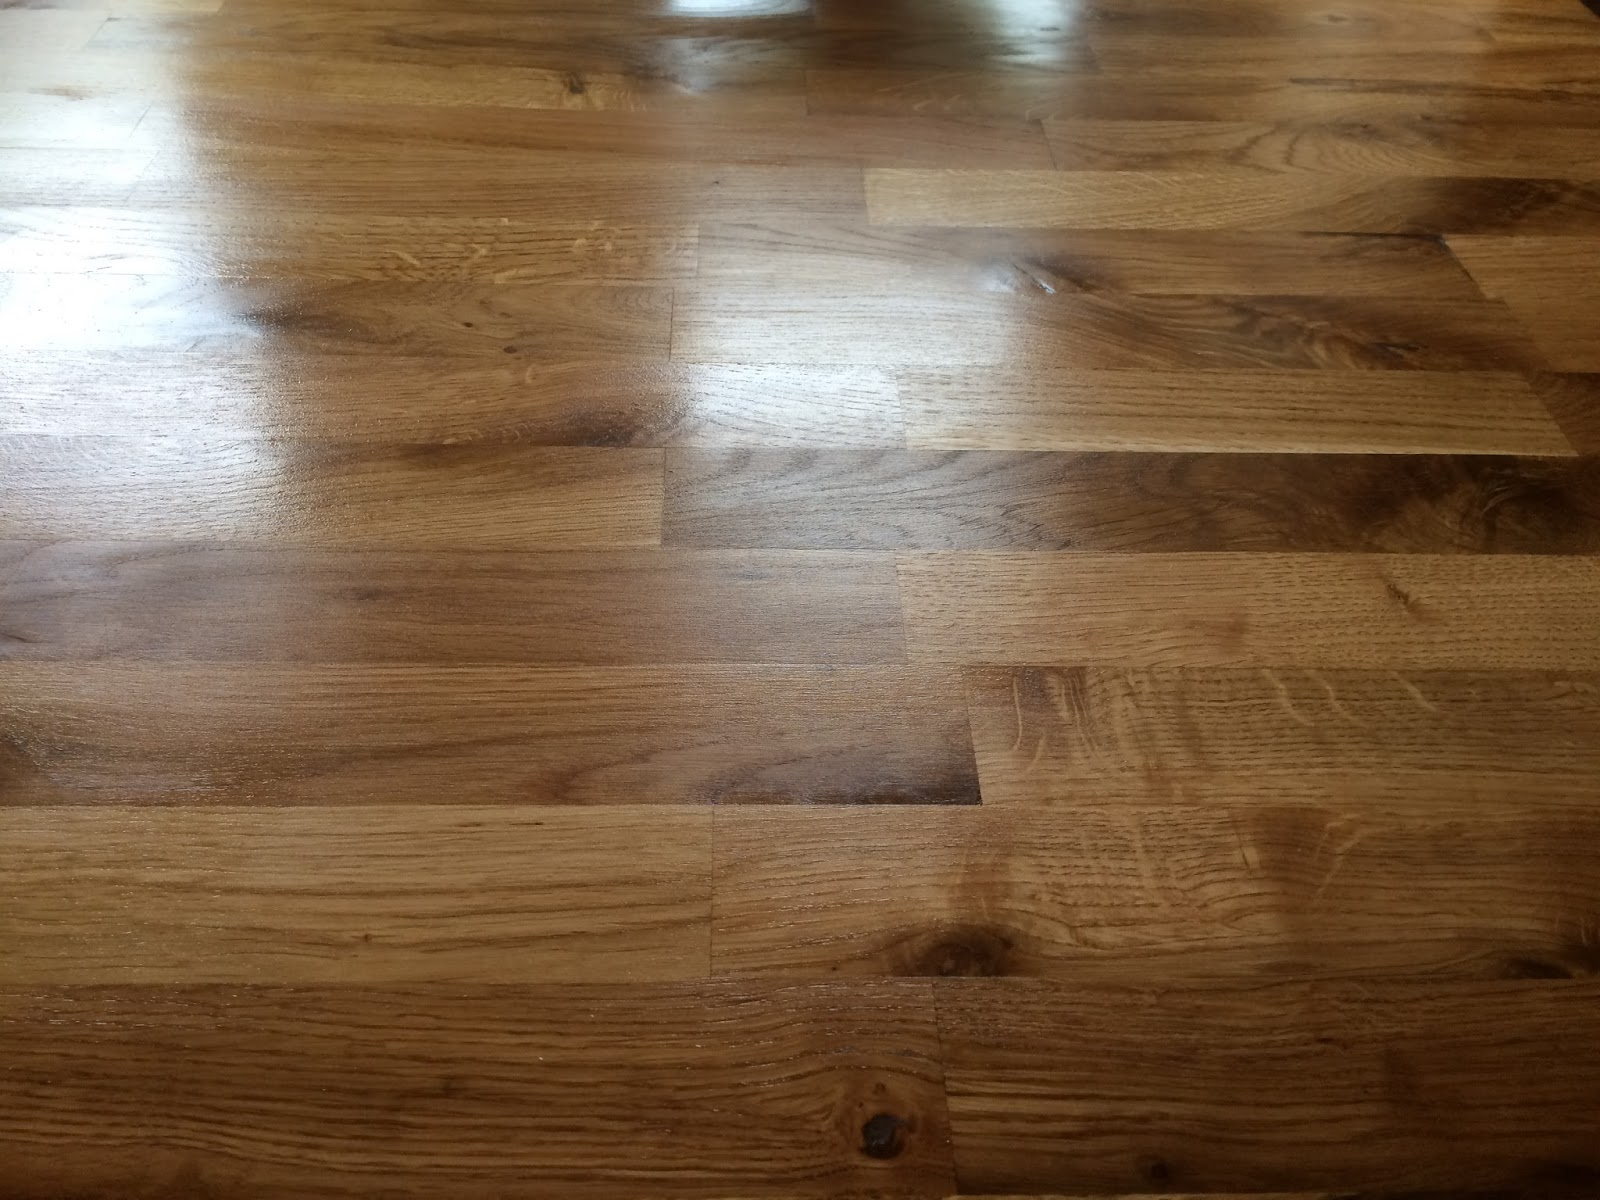 Danish Oil And Worktops Life On Pig Row